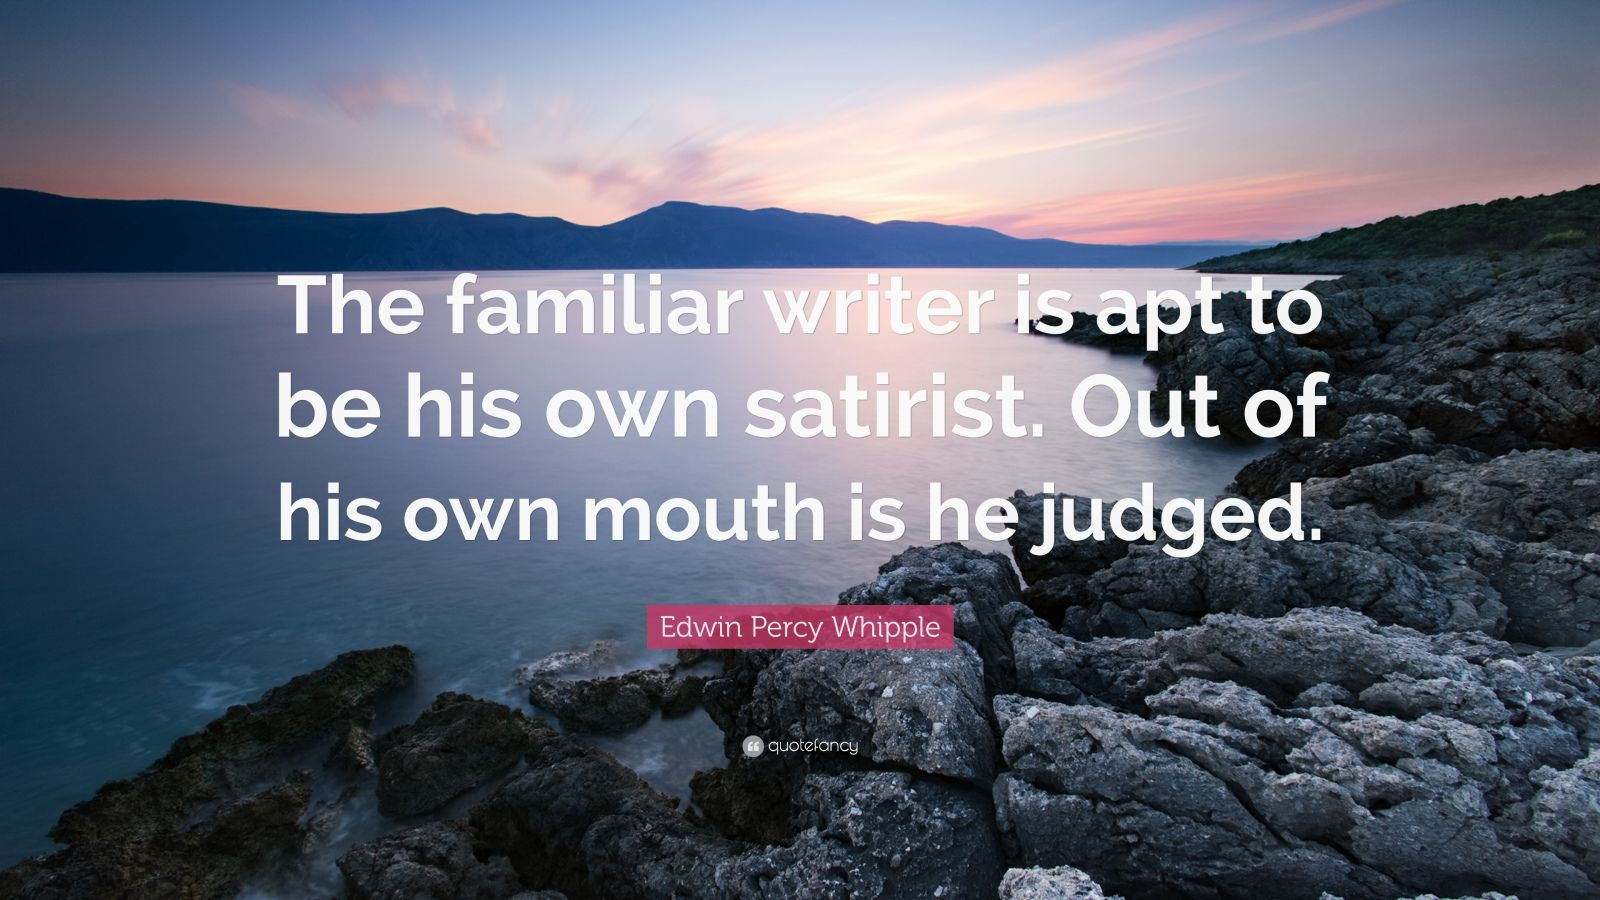 """Edwin Percy Whipple Quote: """"The familiar writer is apt to be his own satirist. Out of his own mouth is he judged."""""""